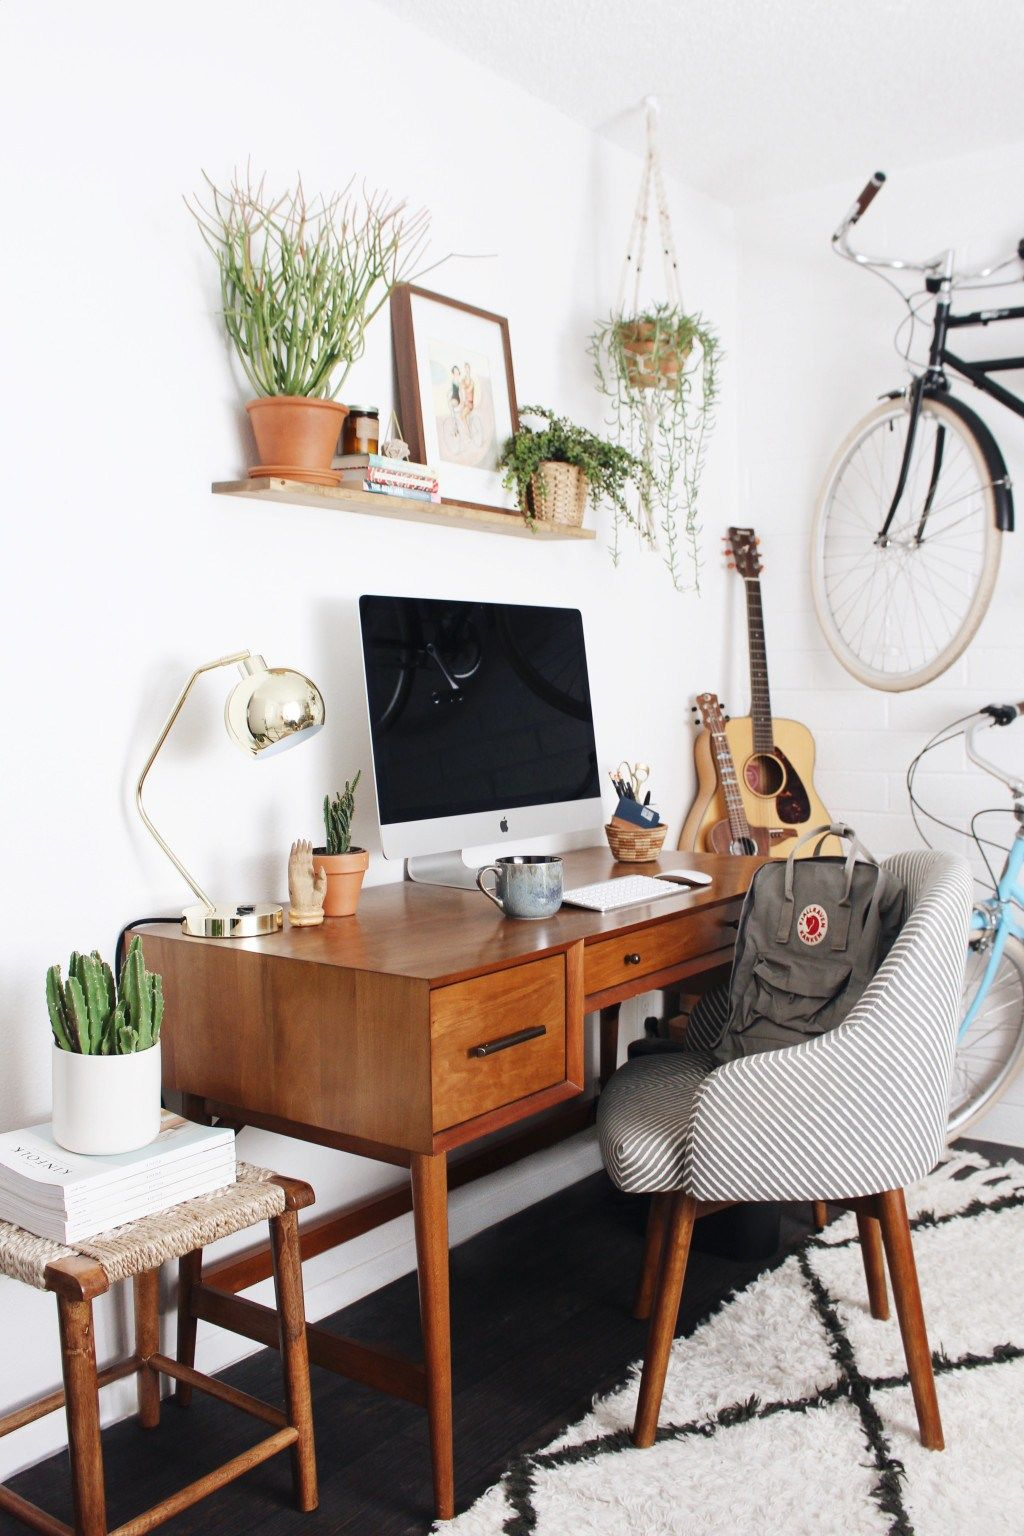 55 small home office ideas that will make you want to work overtime new home ideas pinterest - Ideas decoracion despacho ...